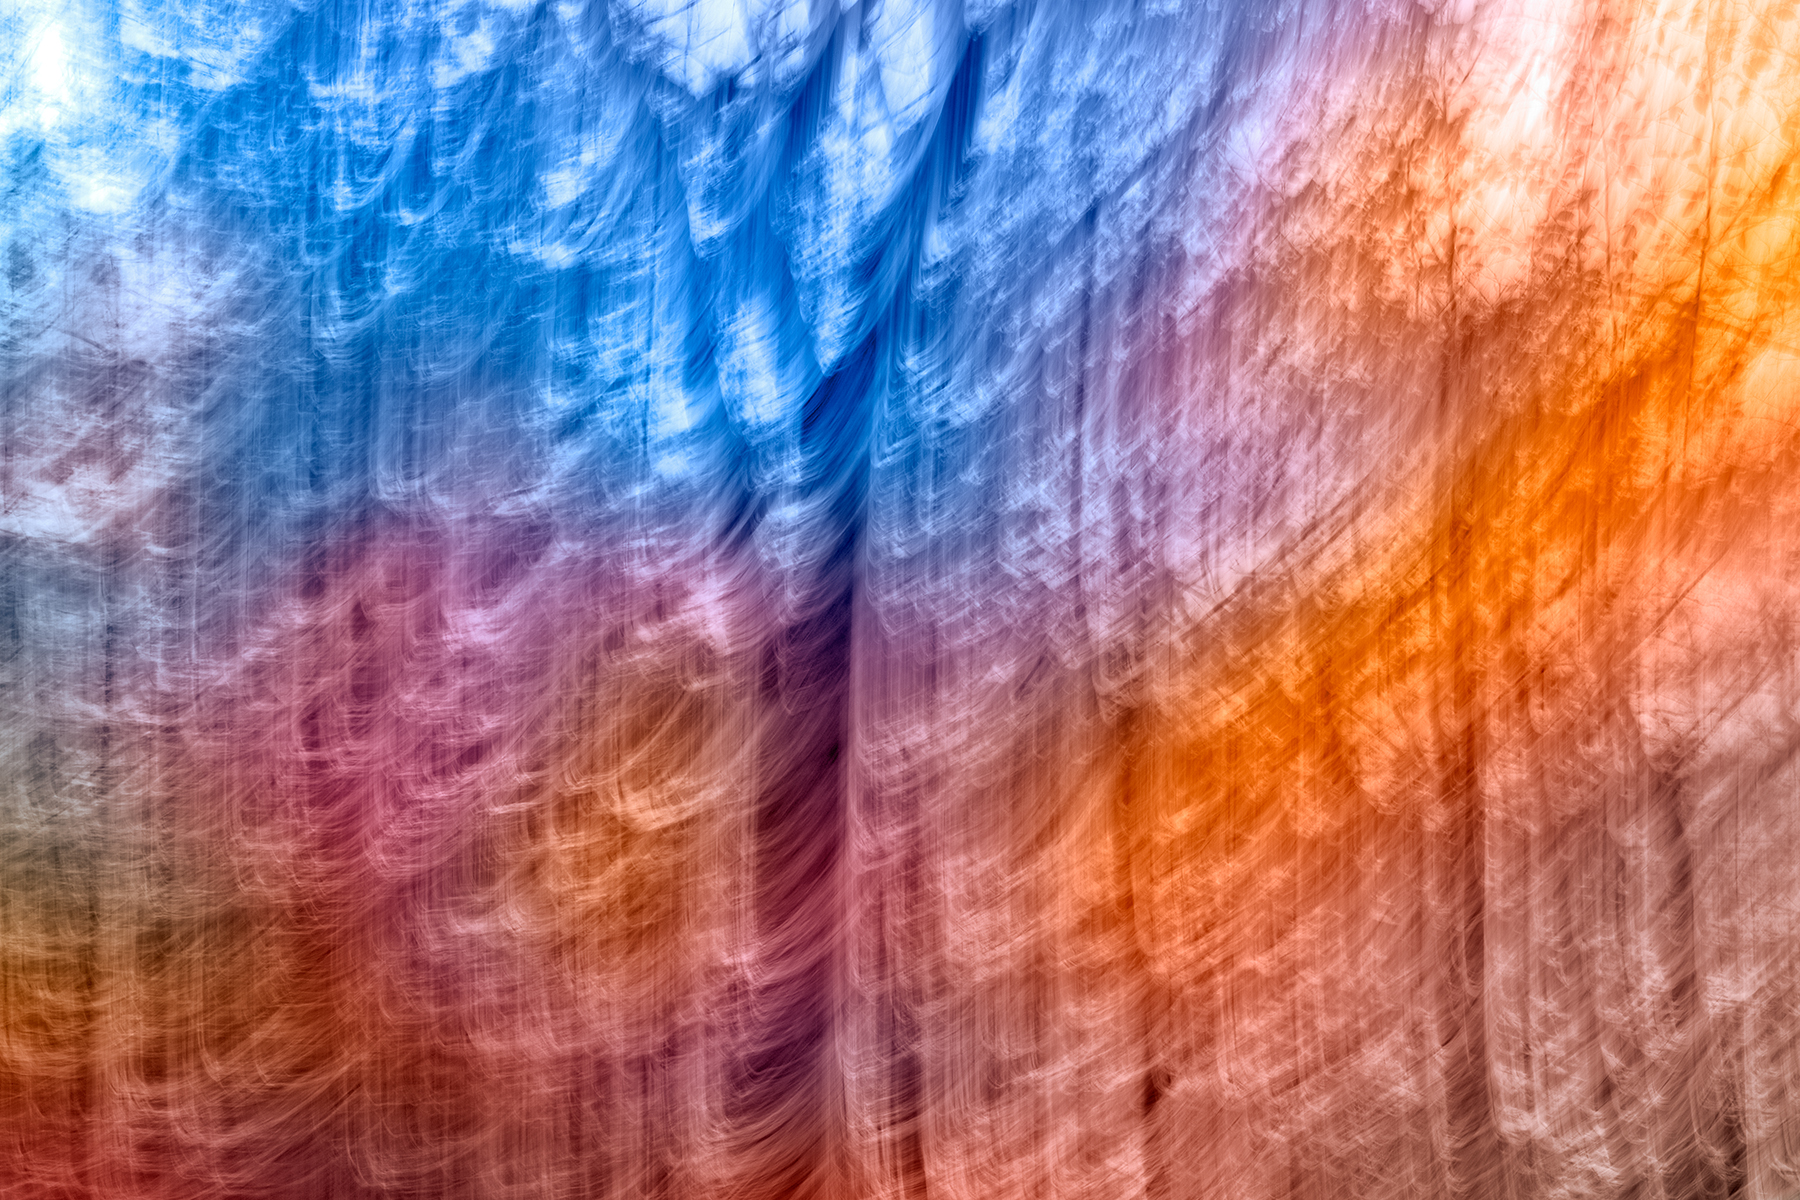 Abstract Rainbow Forest Streaks, Abstract, Pan, Scenic, Scenery, HQ Photo